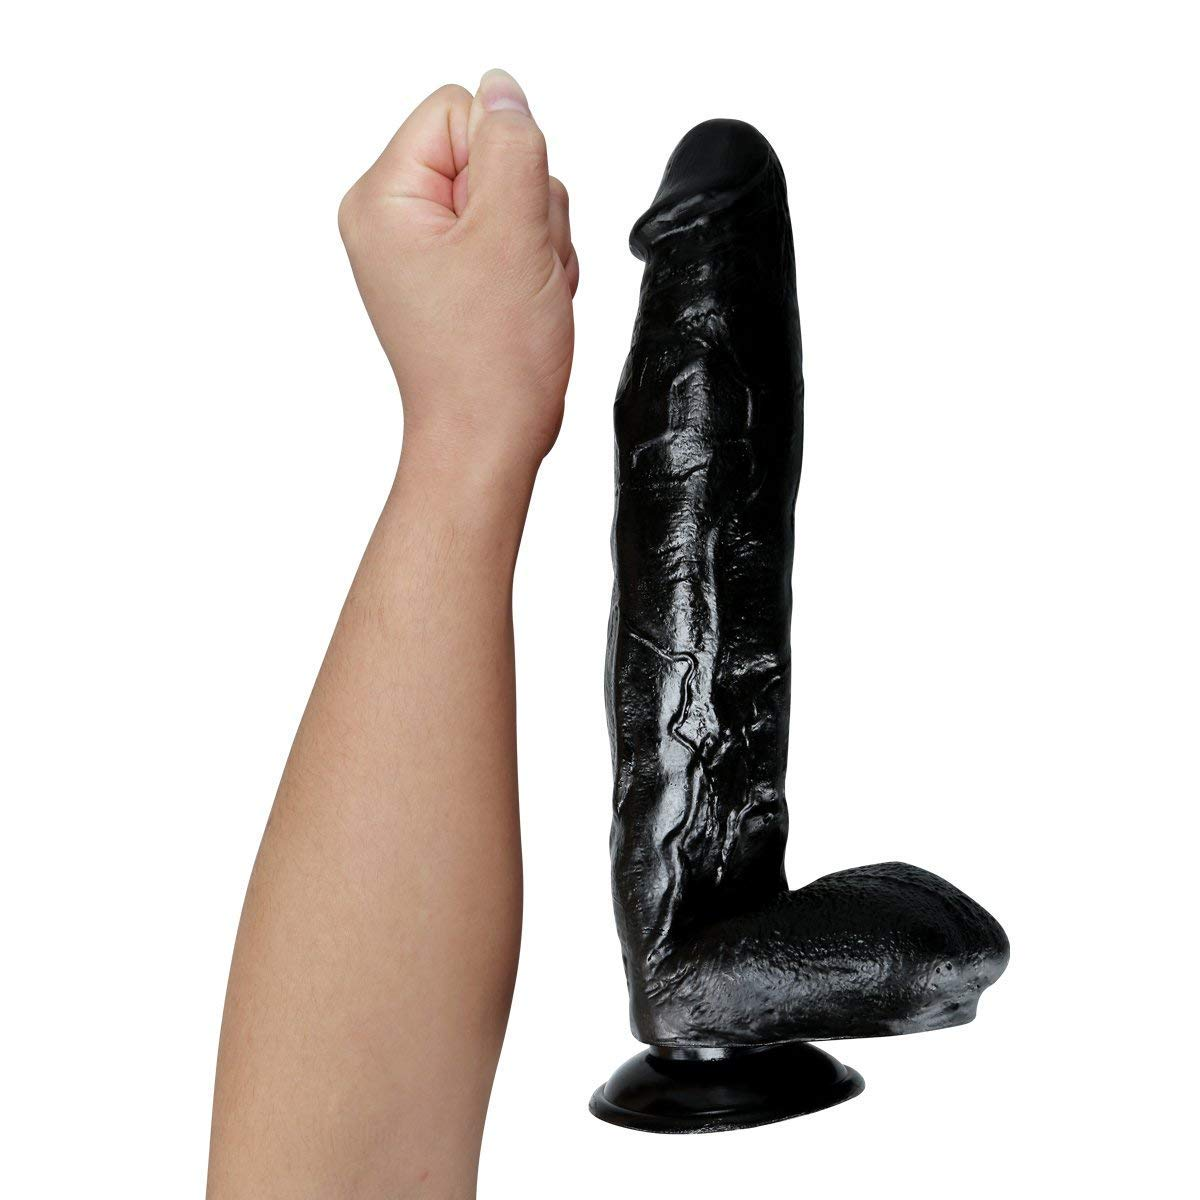 Classic Fantasy 12 Inch Big Black Dî'ldɔ Powerful Suction Cup Flexible Waterproof Relax Massage Wand